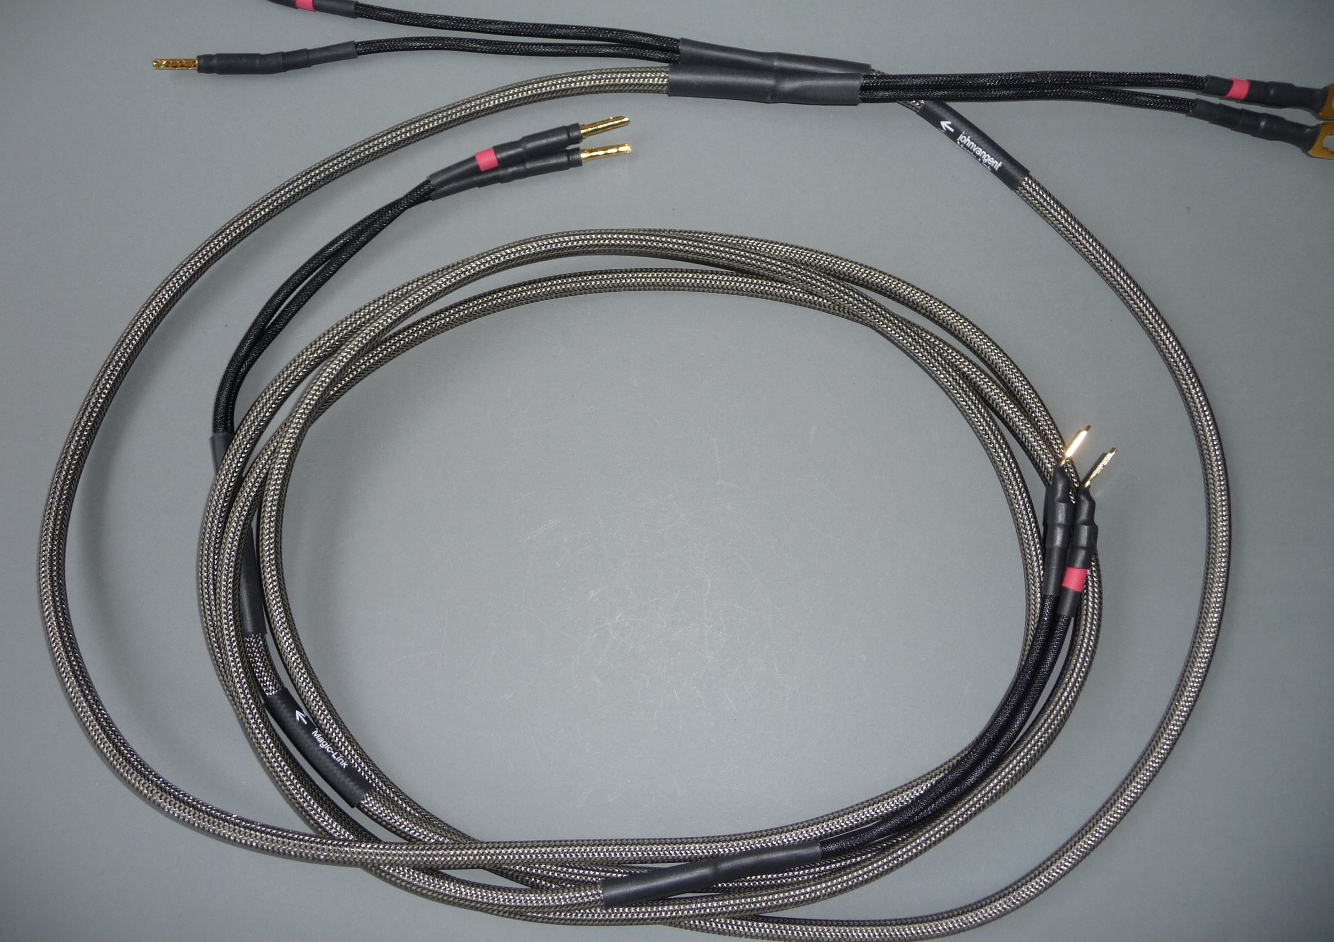 JvG Magic-Link Eclipse Luidspreker kabel